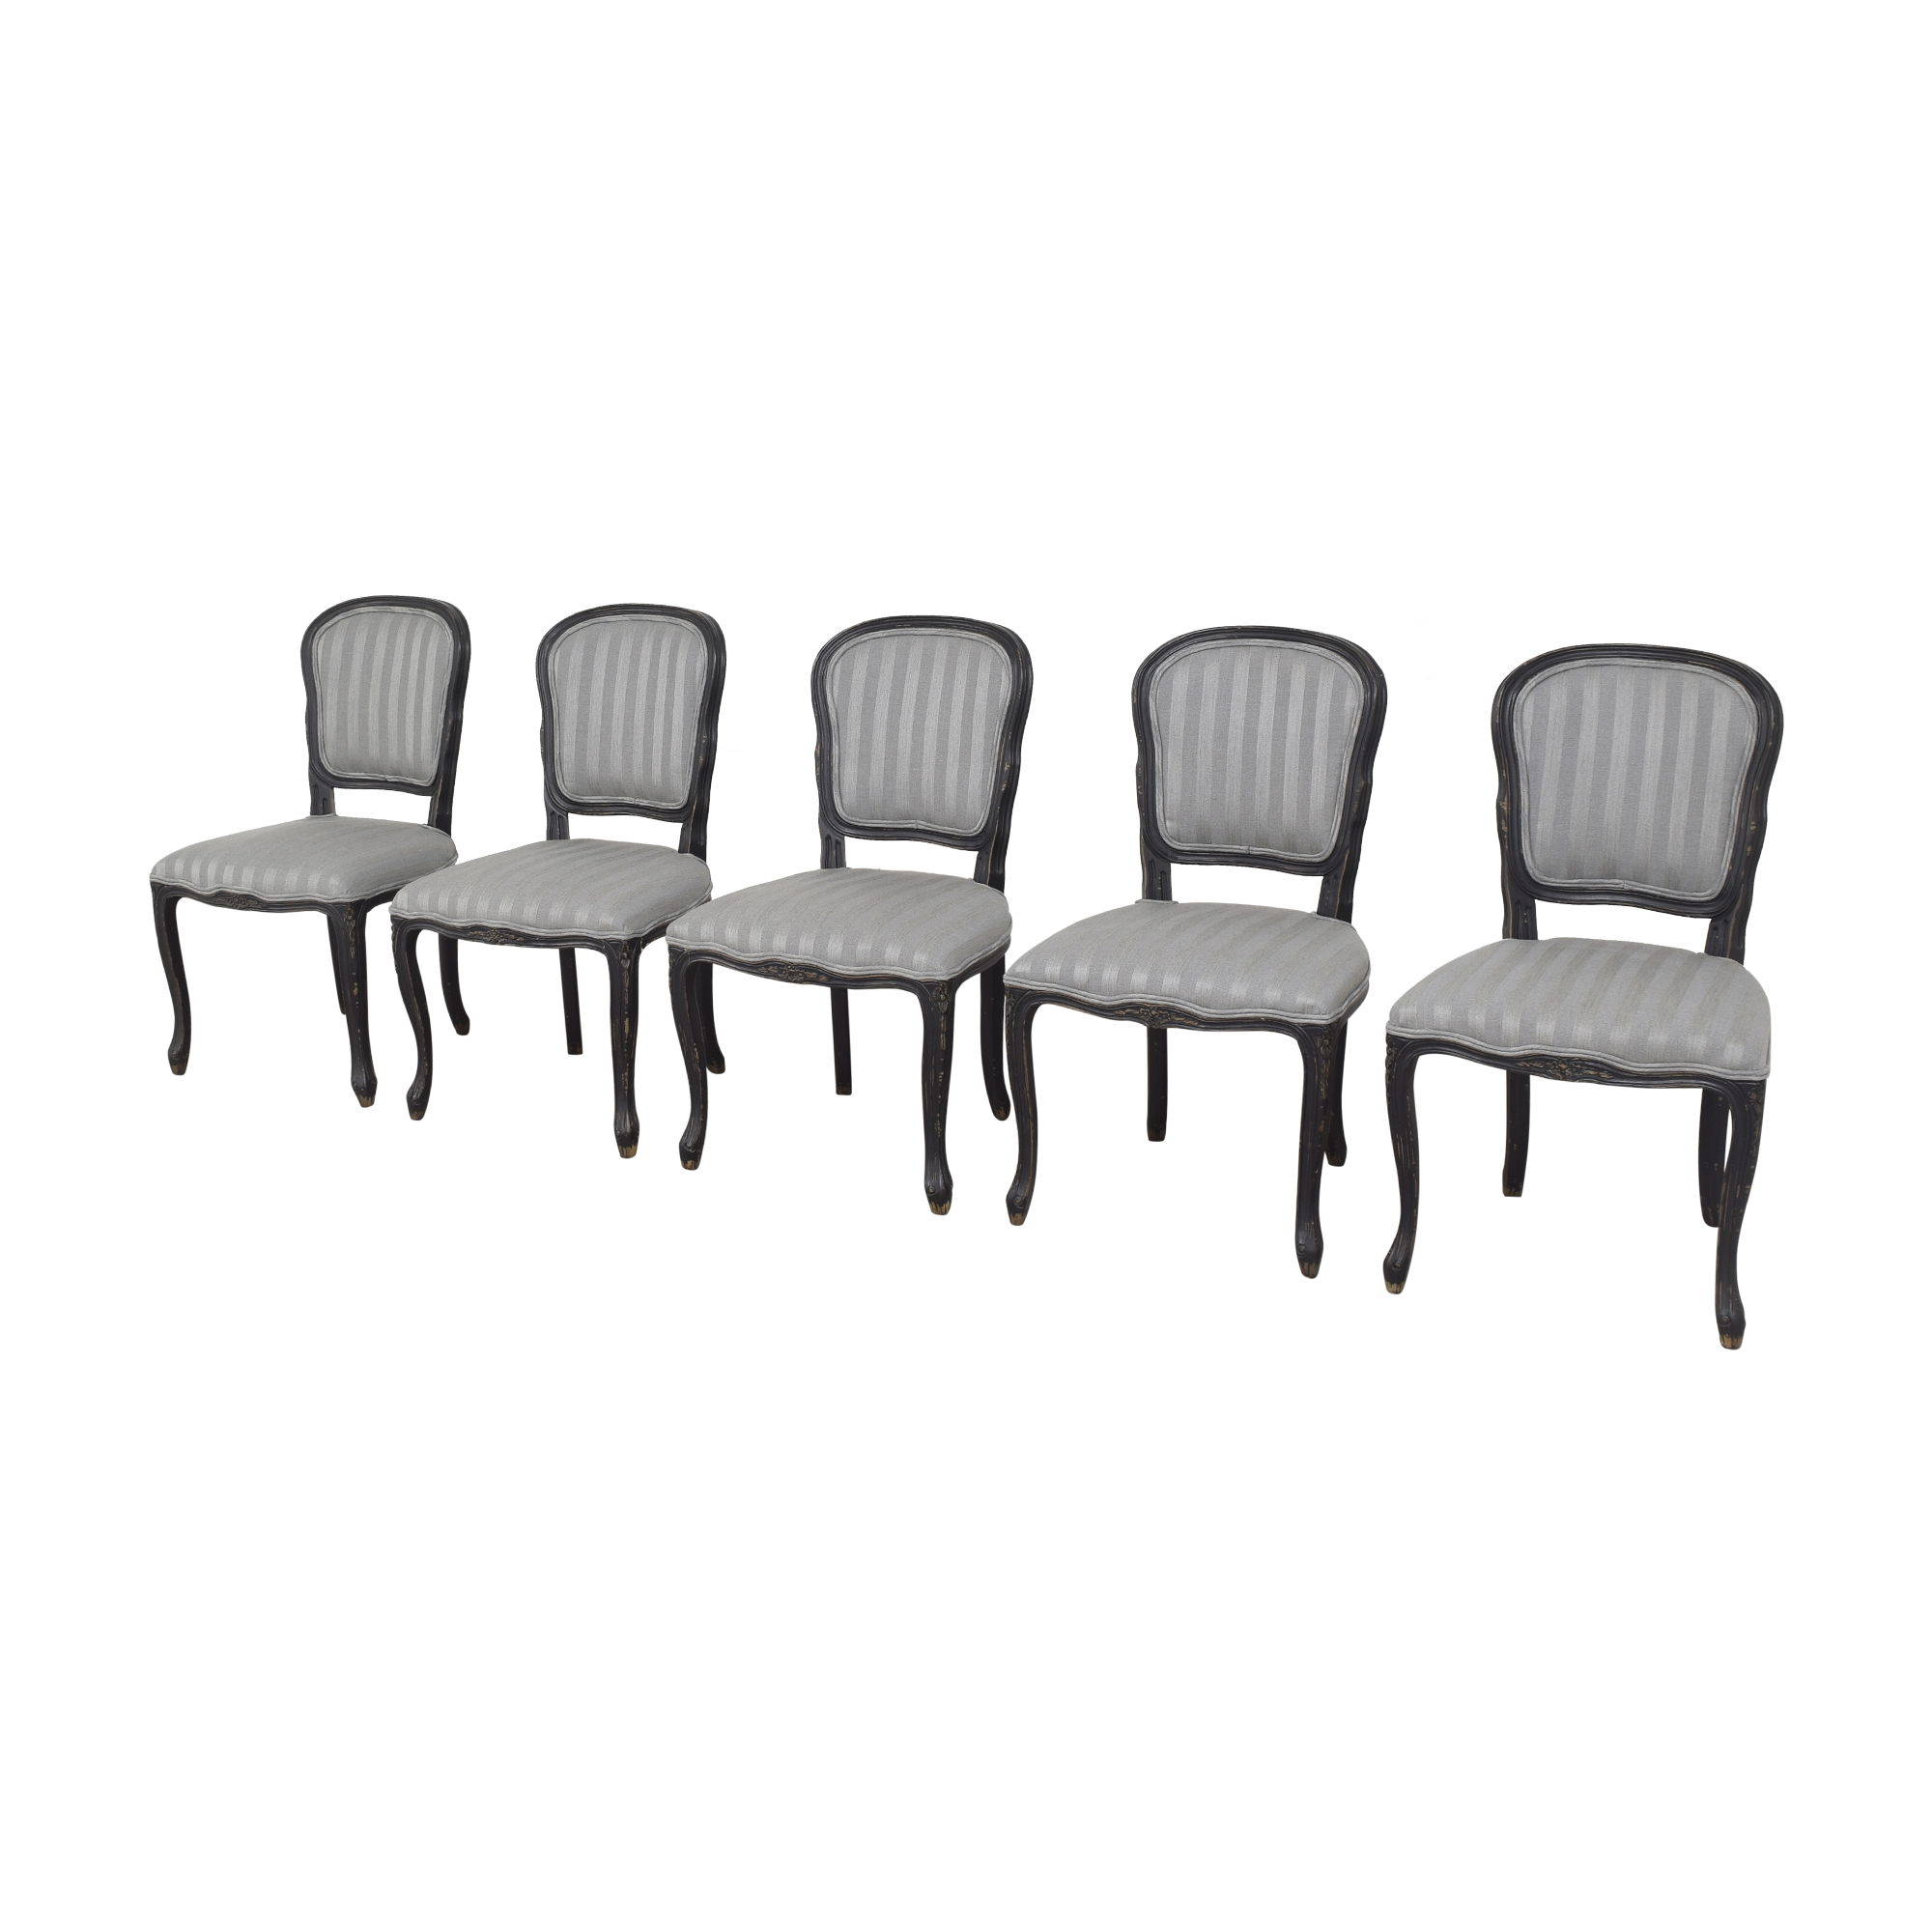 Four Hands Orleans Dining Chairs Four Hands